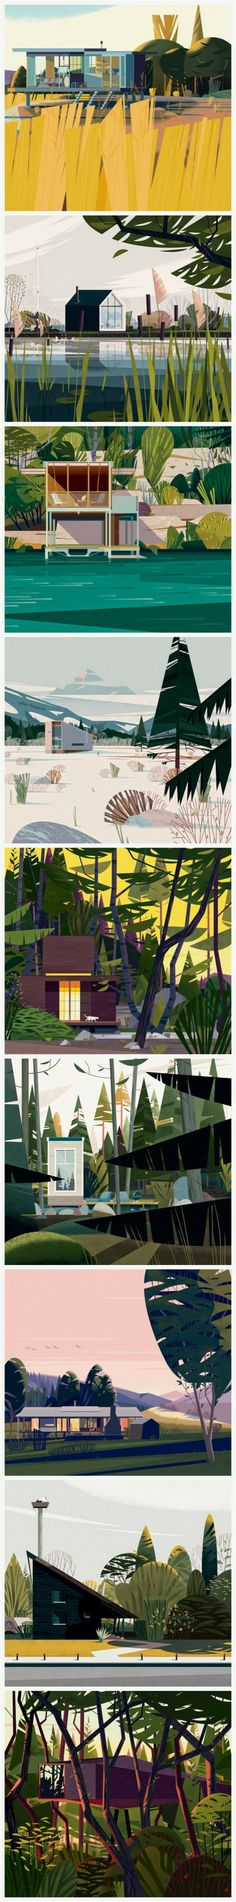 Cabins by Marie-Laure Cruschi aka Cruschiform